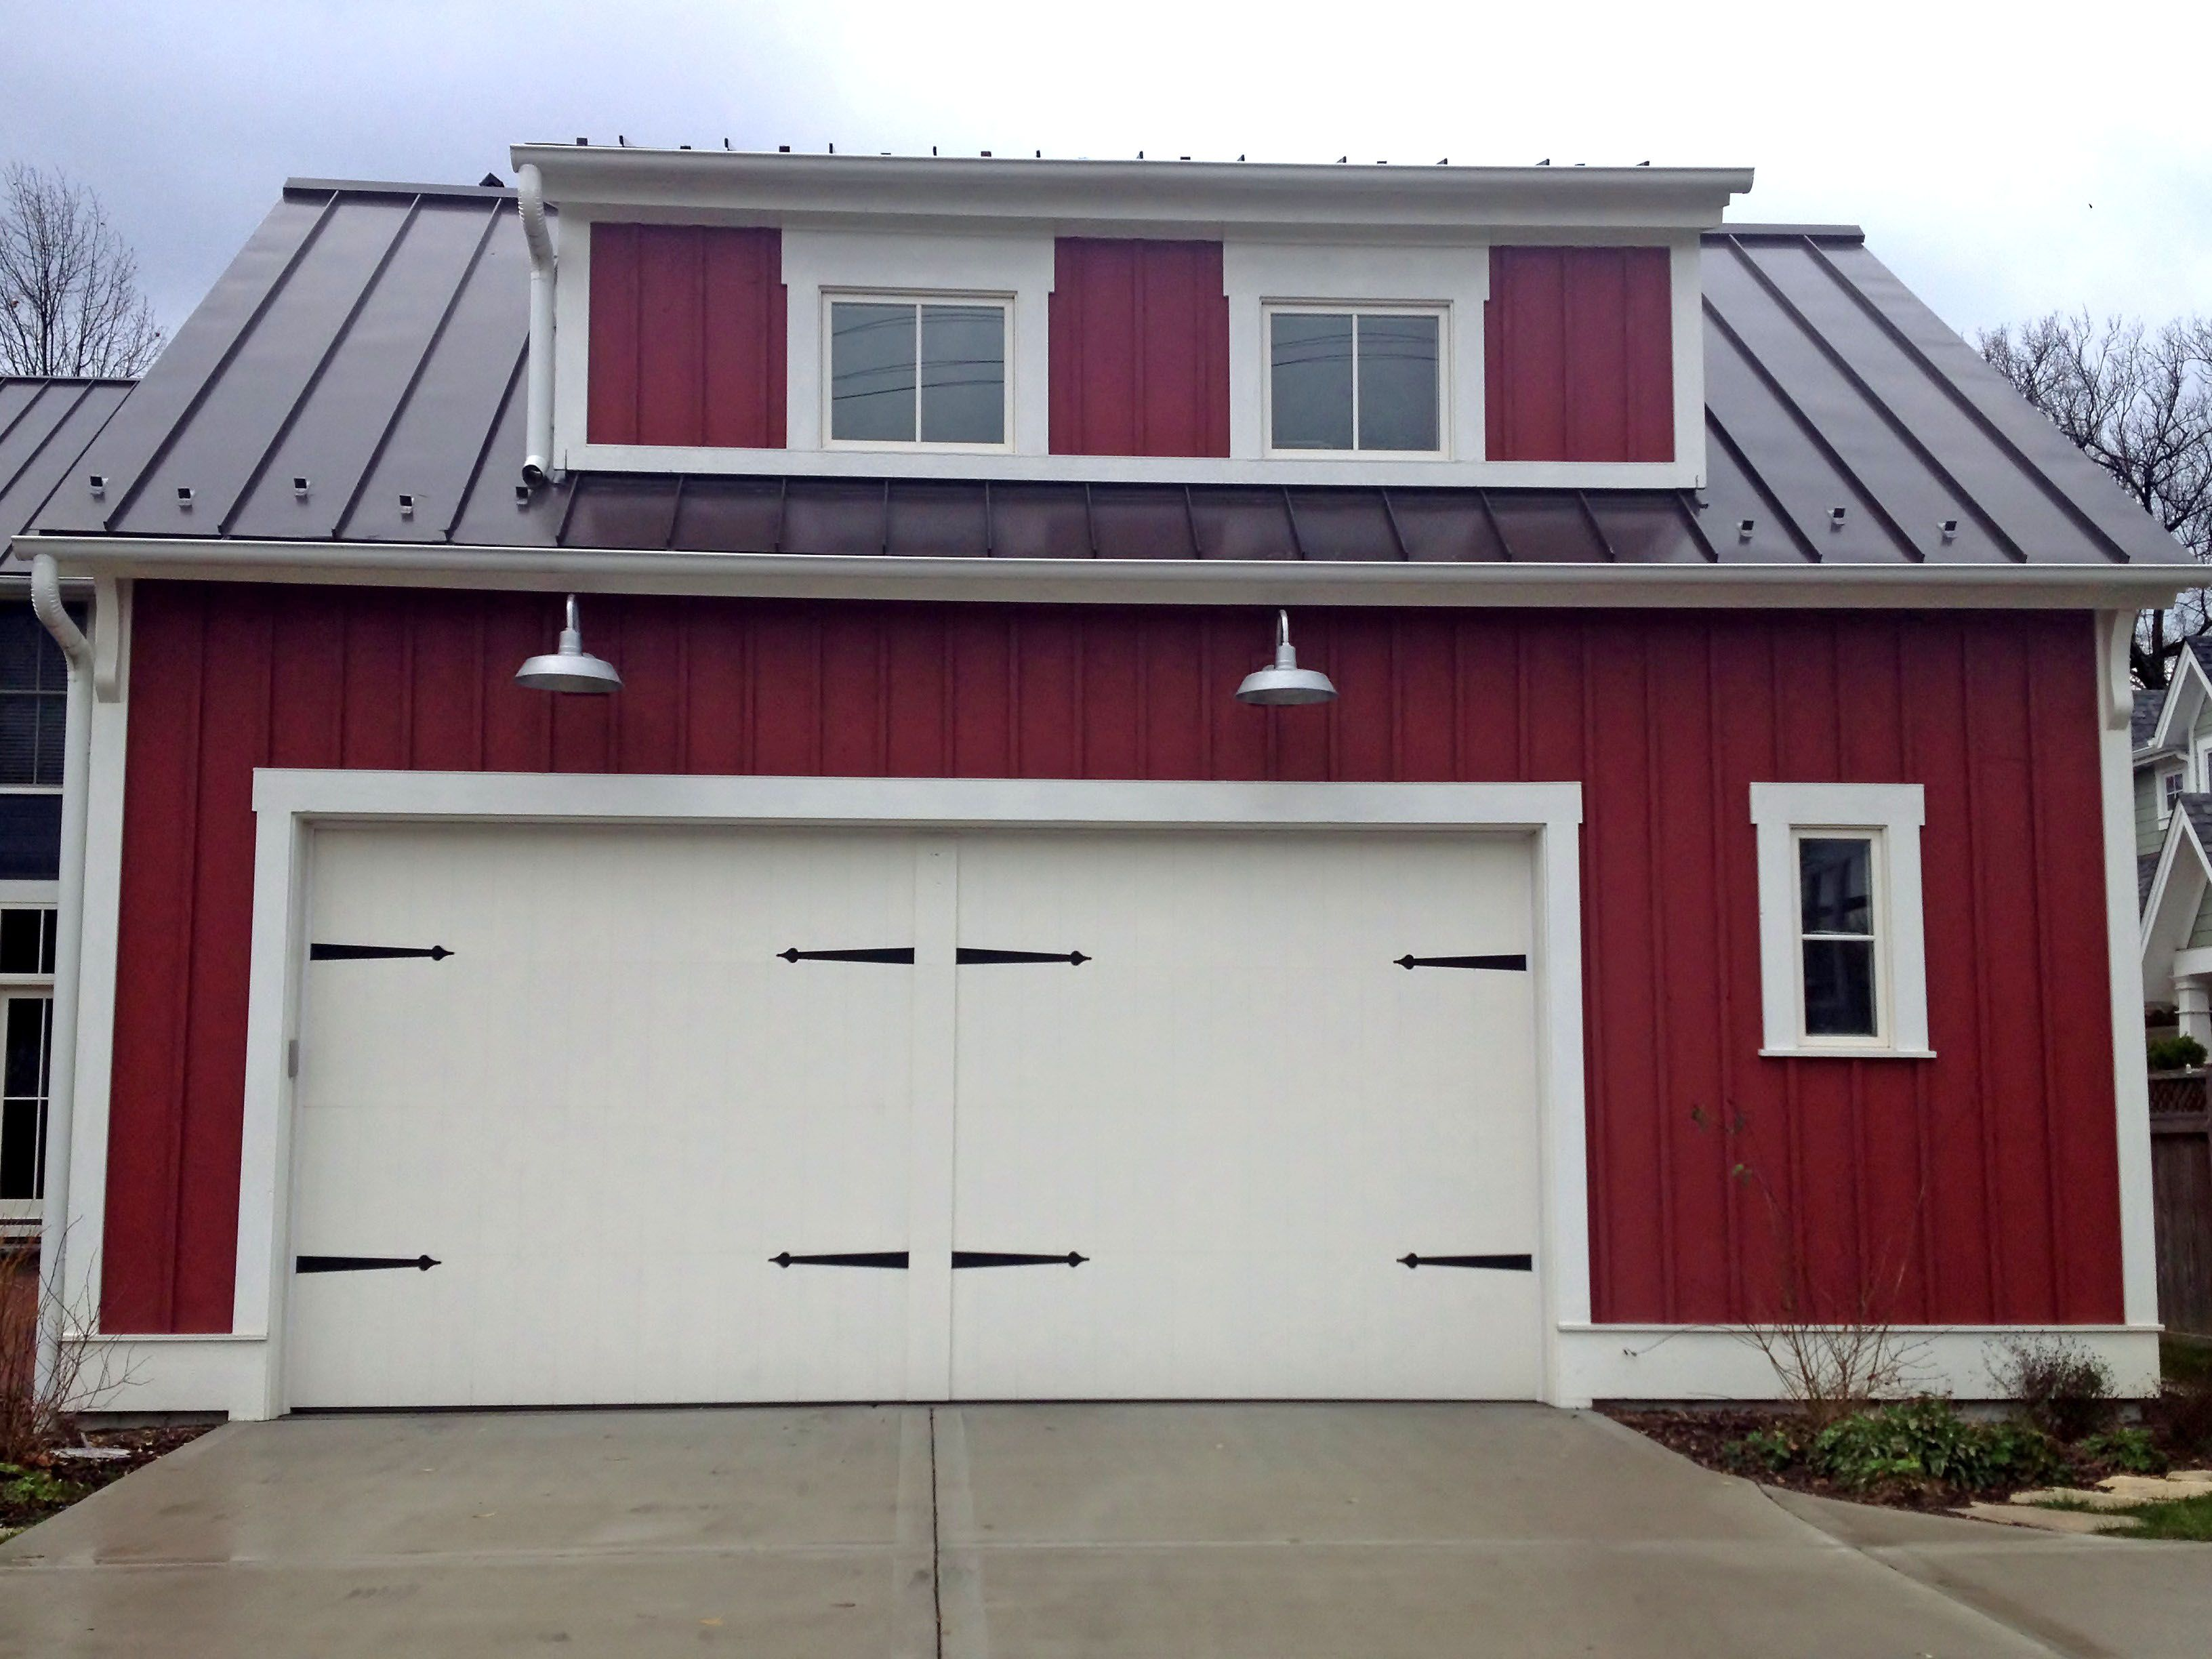 Interesting Modern Farmhouse Architecture With Large Wooden Garage Doors  Decals Also Sweet Red Front Views Wall Houses As Well As Sweet Green Grass  Front ...